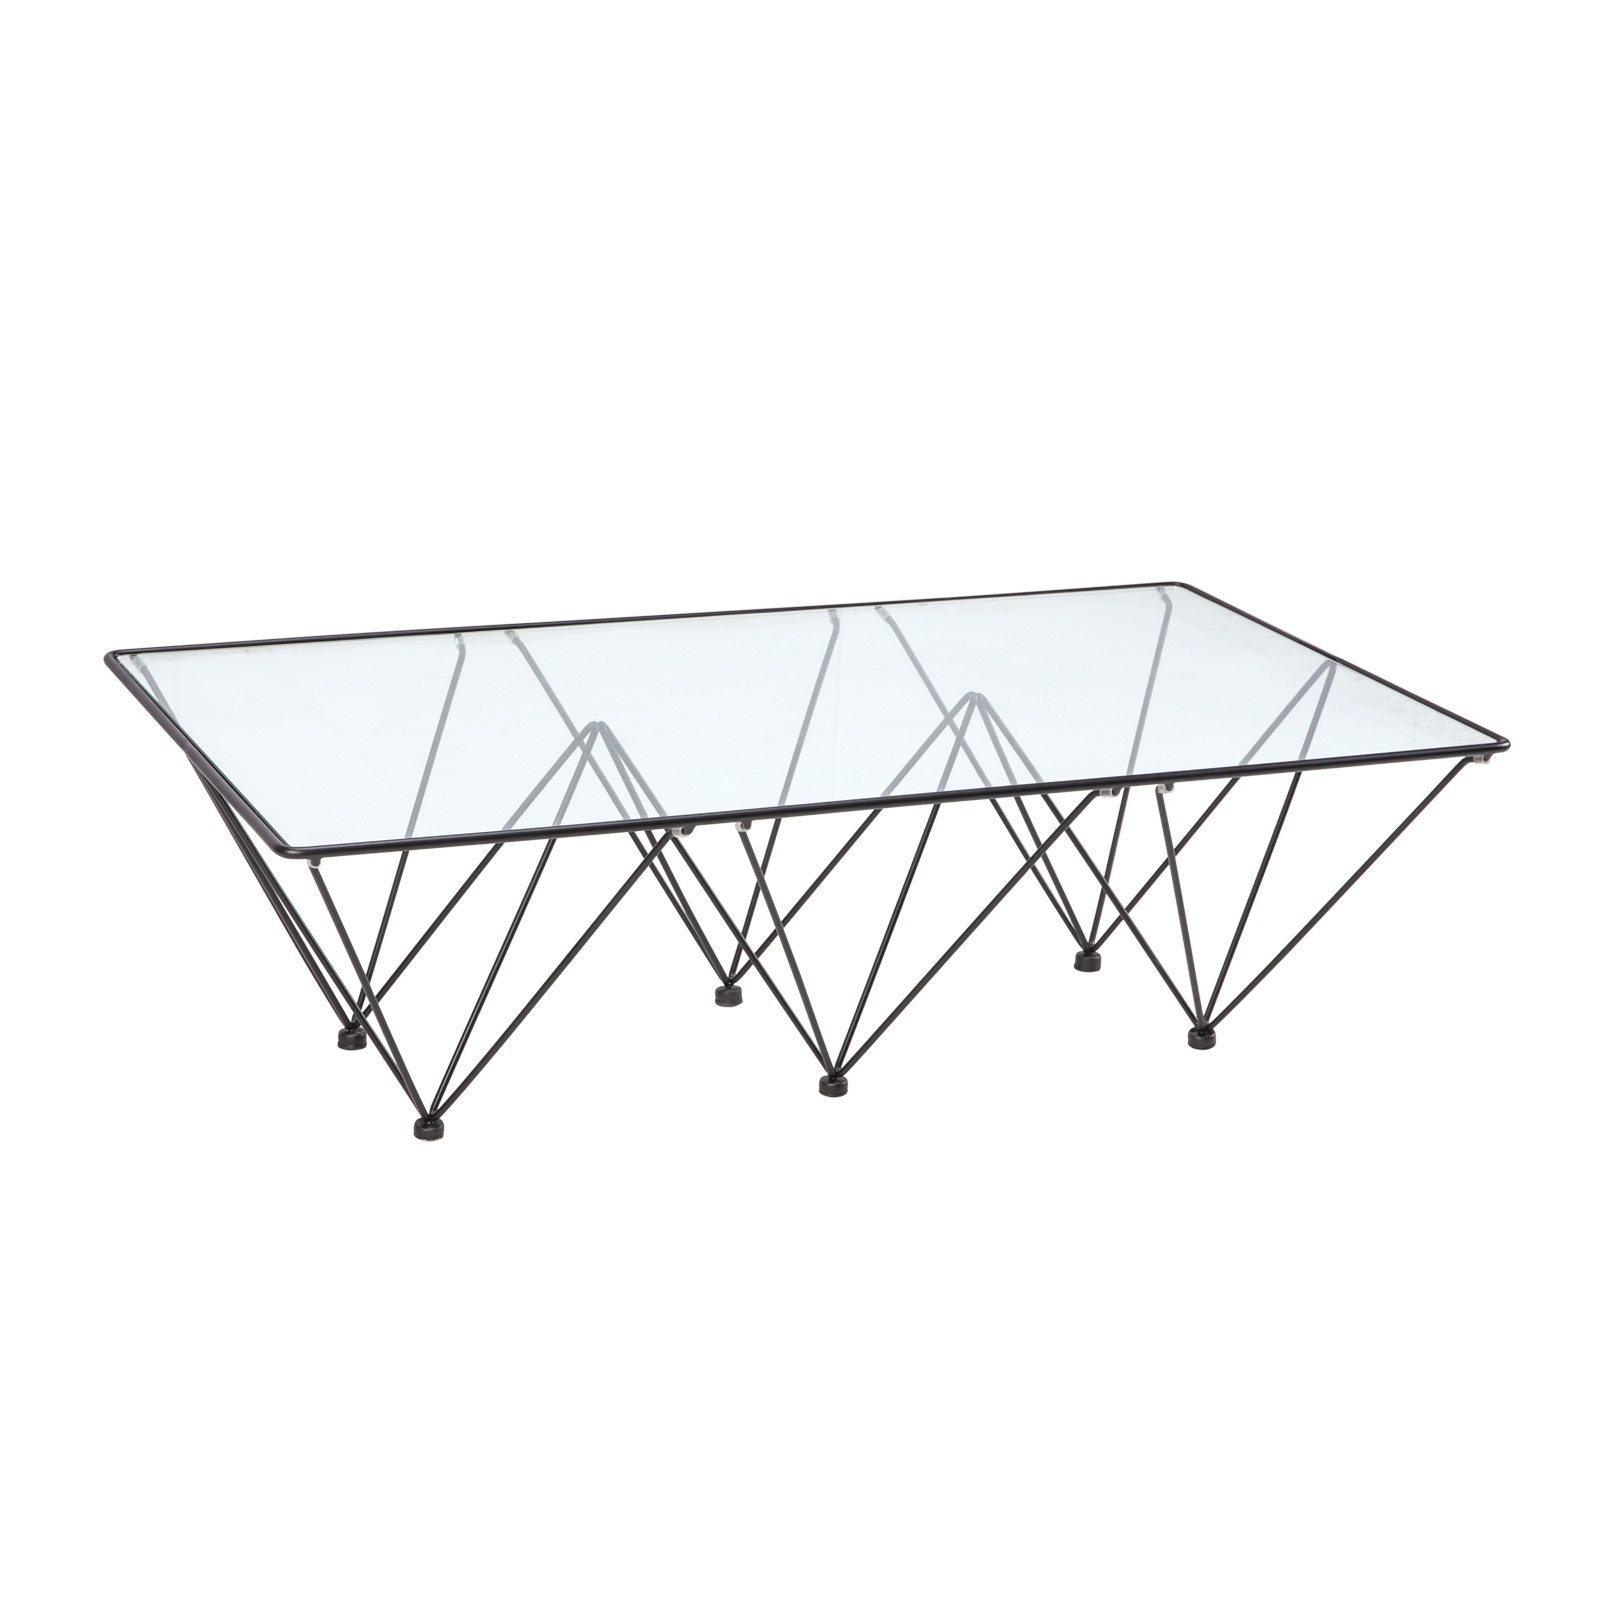 Prism Coffee Table Rentals | Event Furniture Rental throughout Line Geo Credenzas (Image 28 of 30)